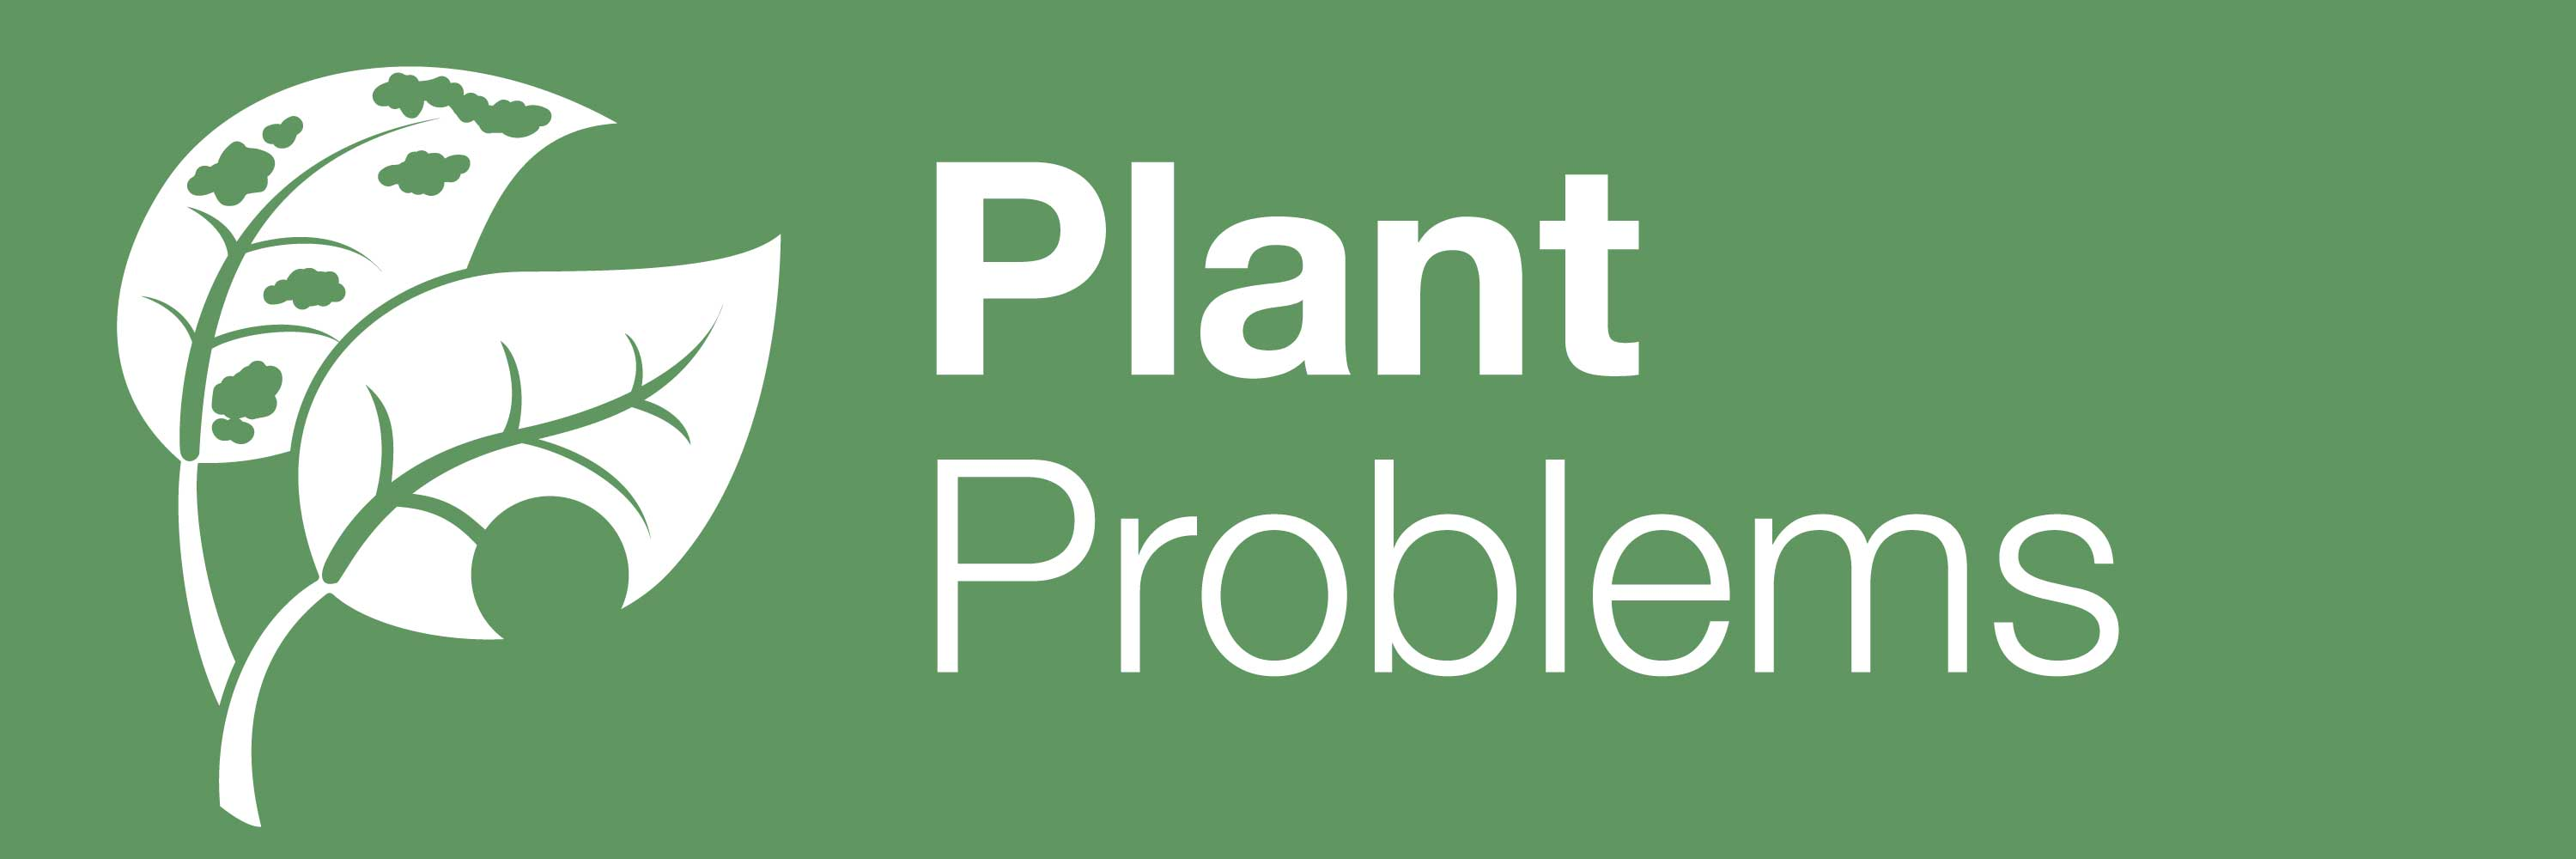 Plant Problems Banner